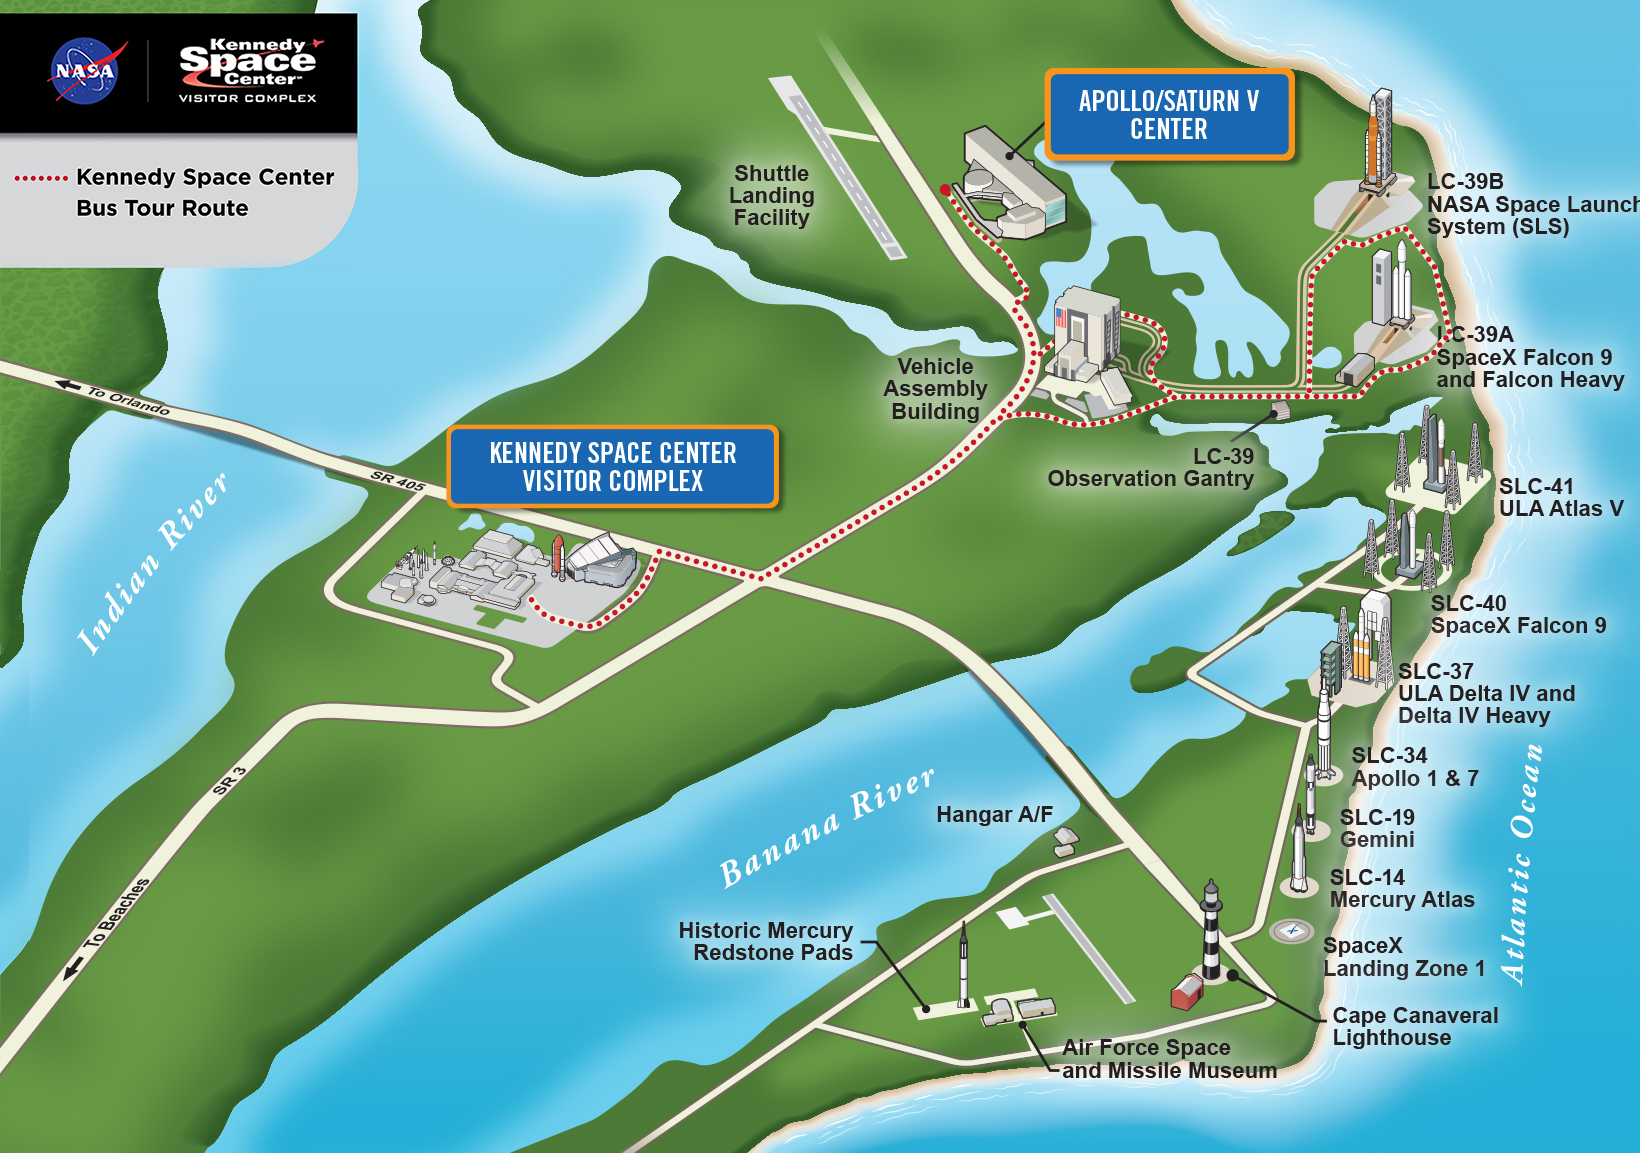 Map of bus tour route at Kennedy Space Center